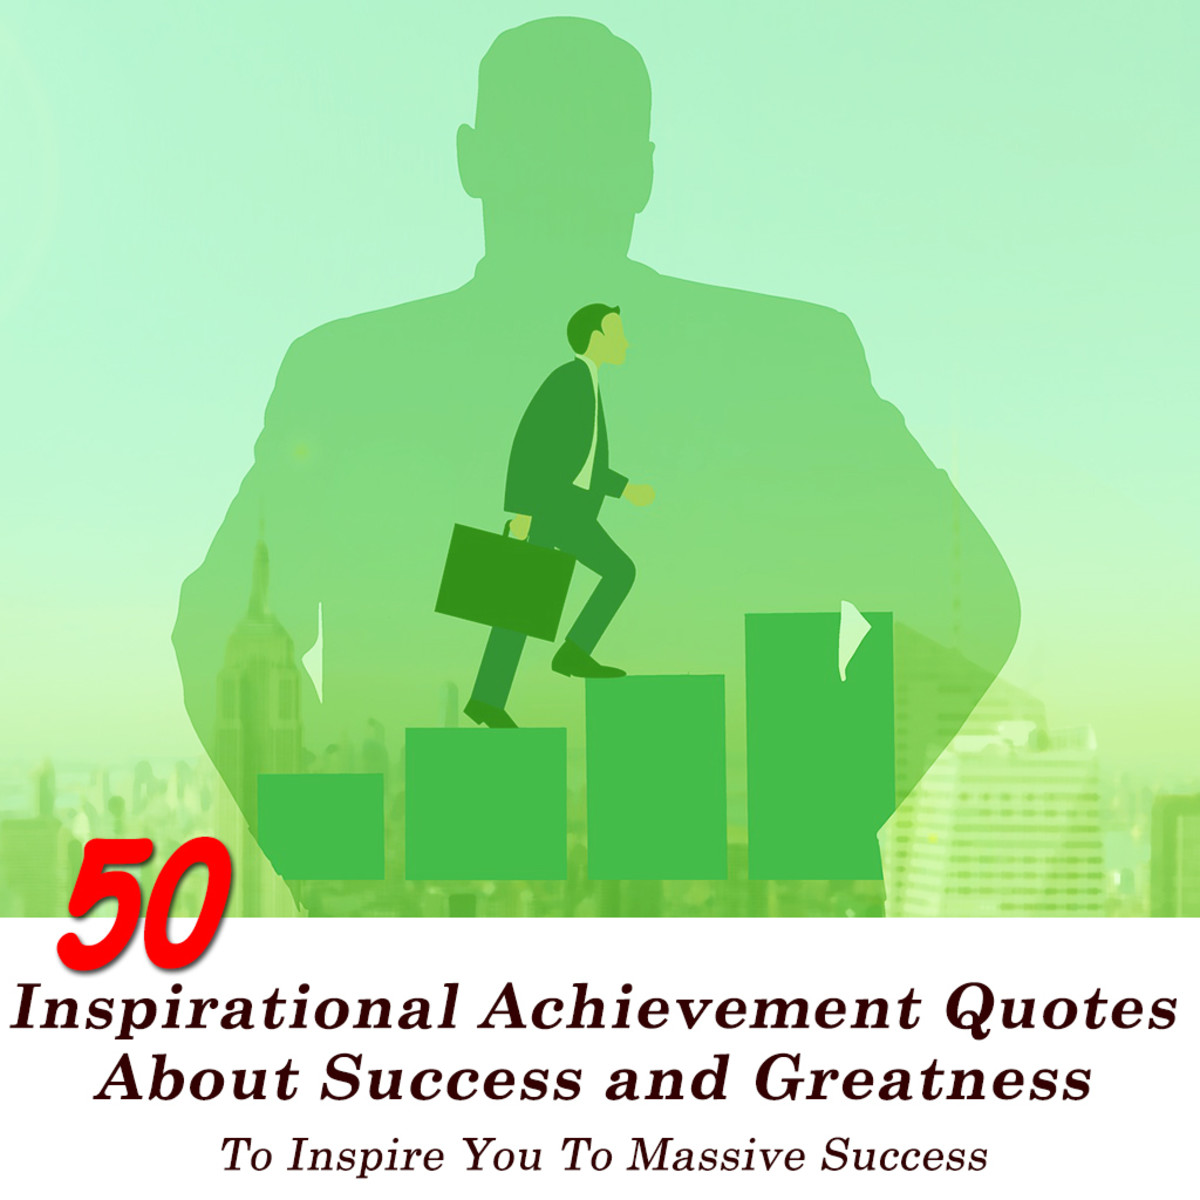 50 Inspirational Achievement Quotes About Success and Greatness To Inspire You To Massive Success